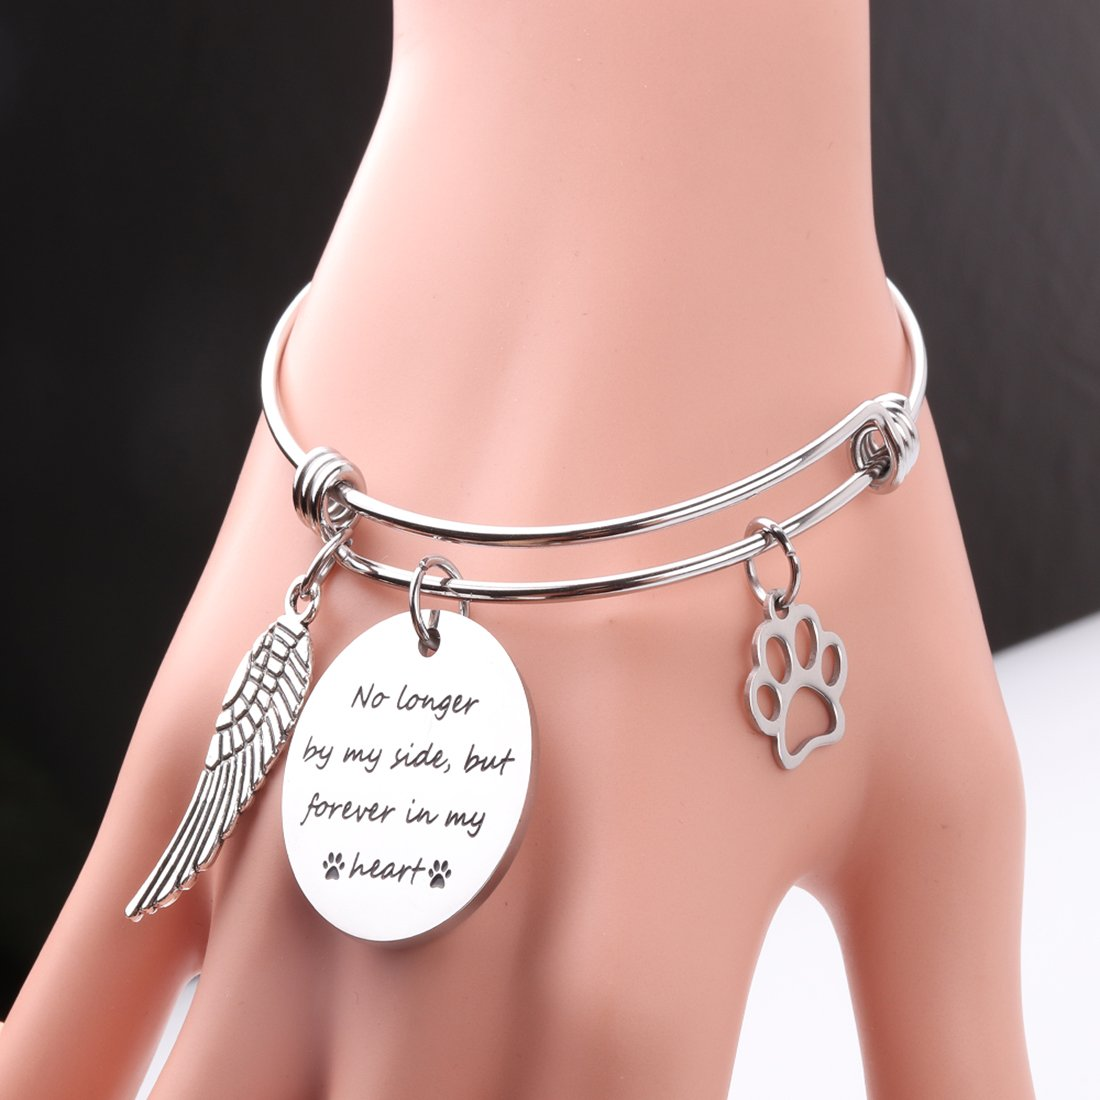 RUNXINTD Personalized Pet Memorial Bracelet Pet Memorial Gift No Longer by My Side but Forever in My Heart Gift for Pet Lover